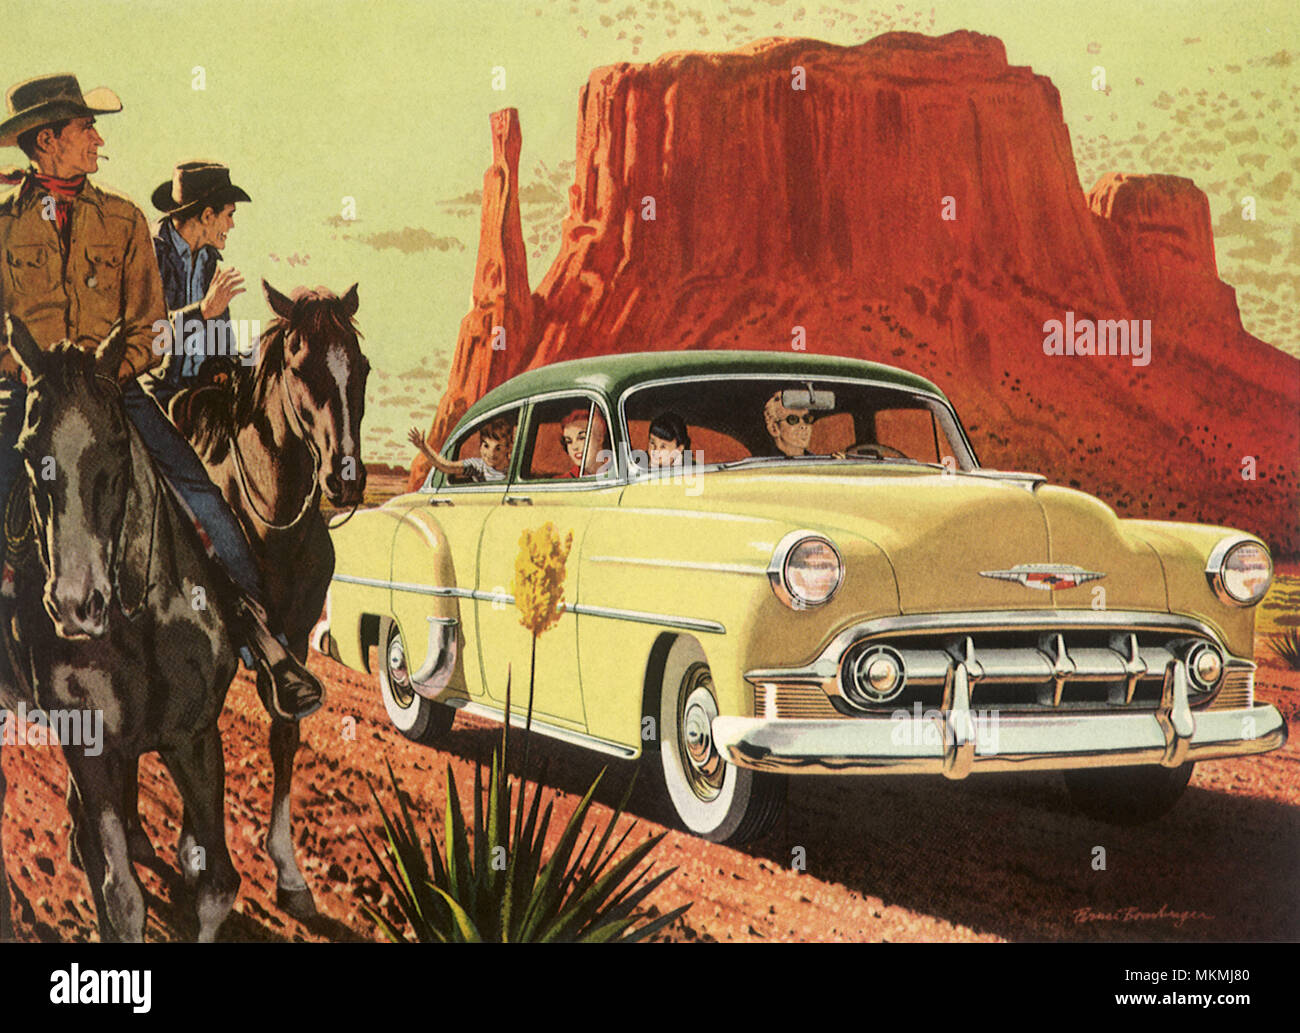 1953 Chevrolet Bel Air Stock Photo 184235520 Alamy Chevy